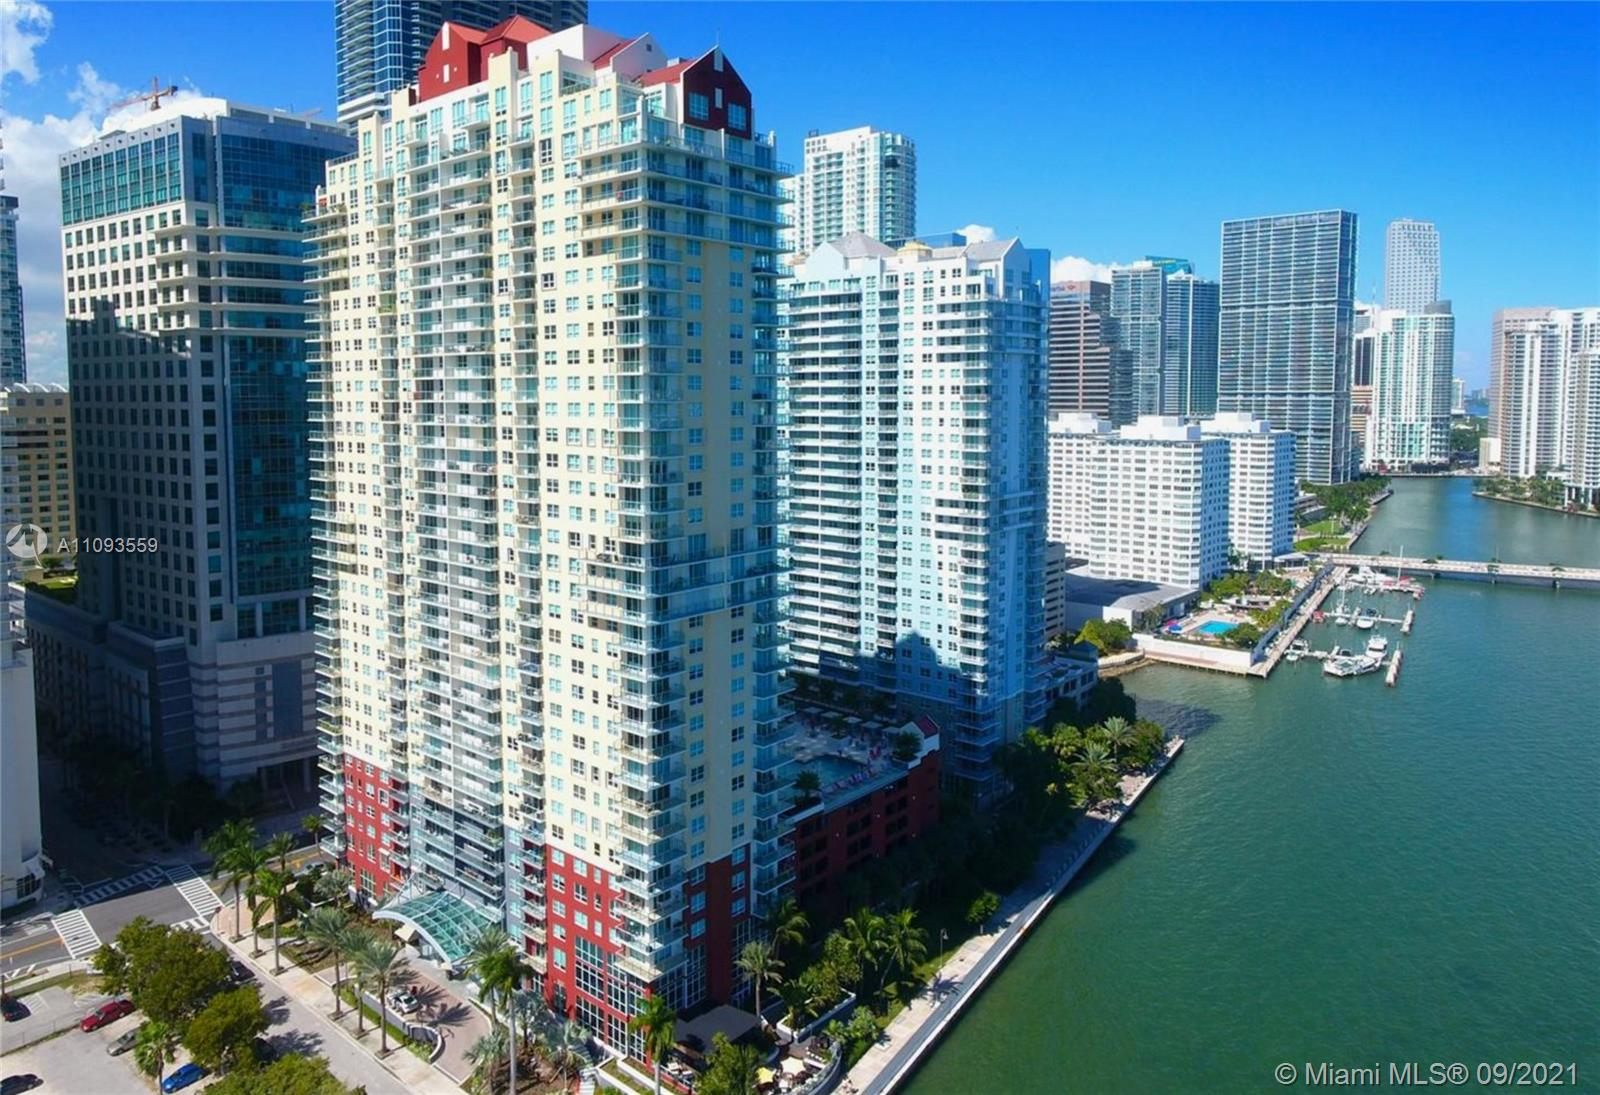 THE MARK ON BRICKELL COND Condo,For Rent,THE MARK ON BRICKELL COND Brickell,realty,broker,condos near me